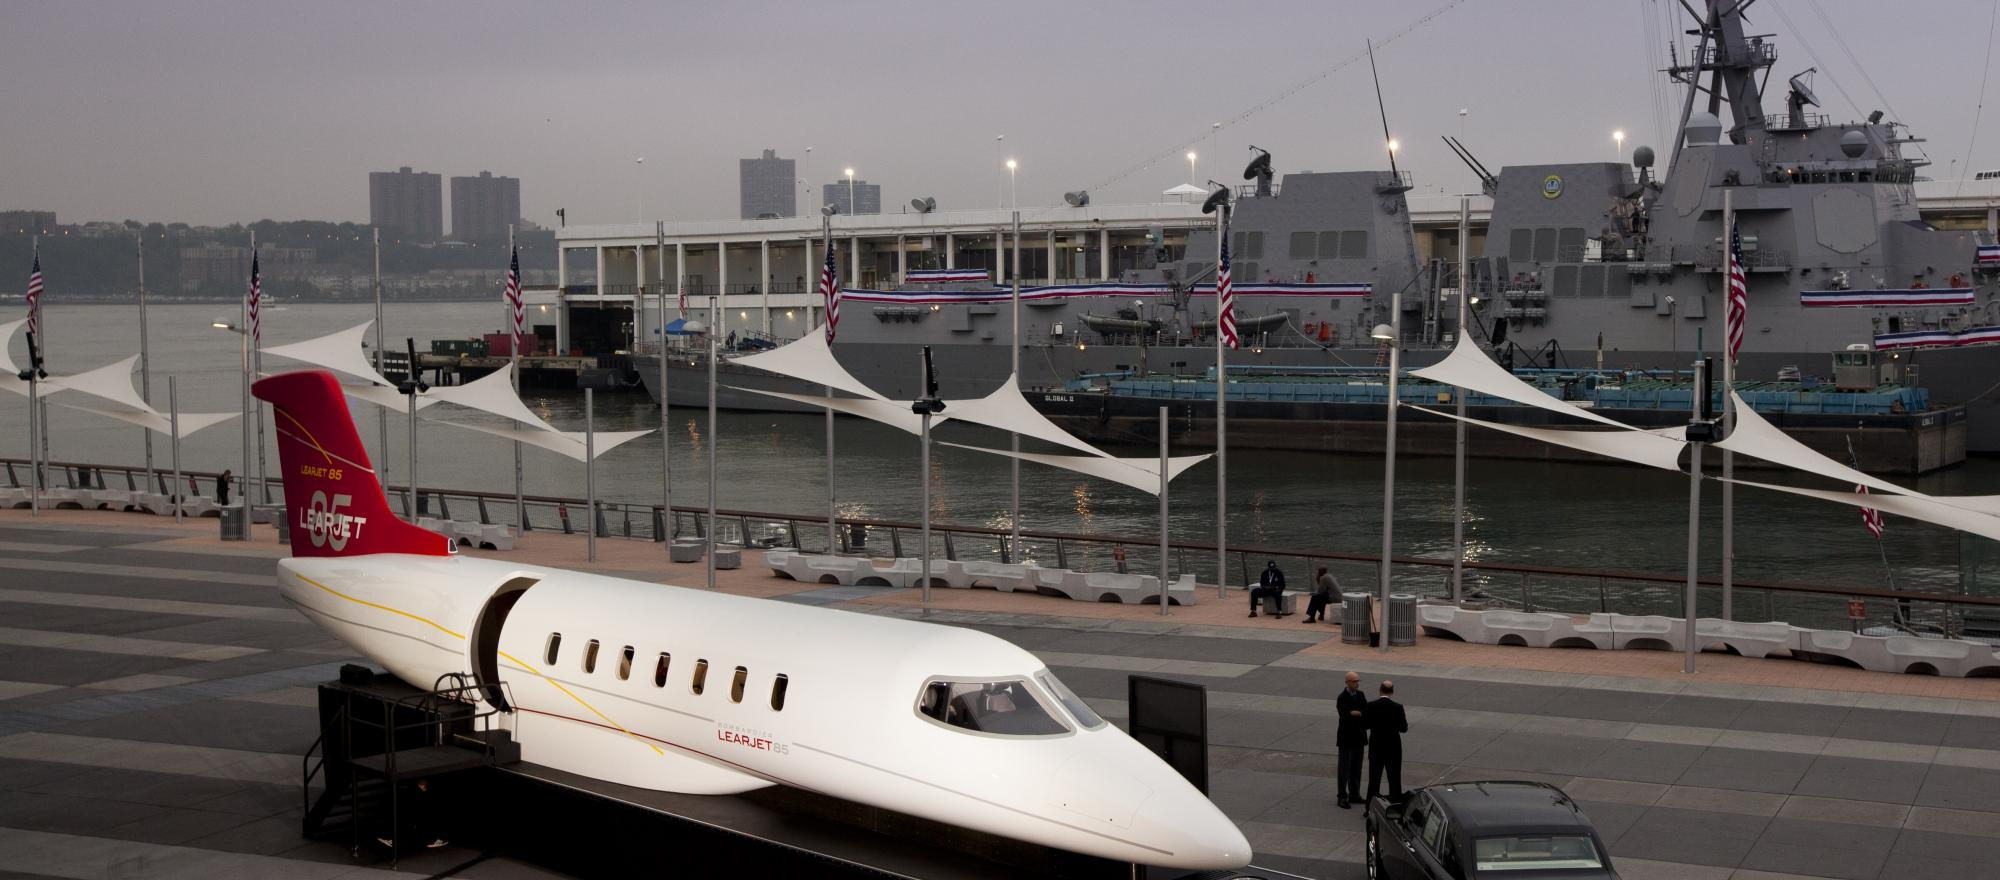 Learjet 85 Unveiled at Intrepid Museum in New York City Photo Credit:  Jason Tinacci